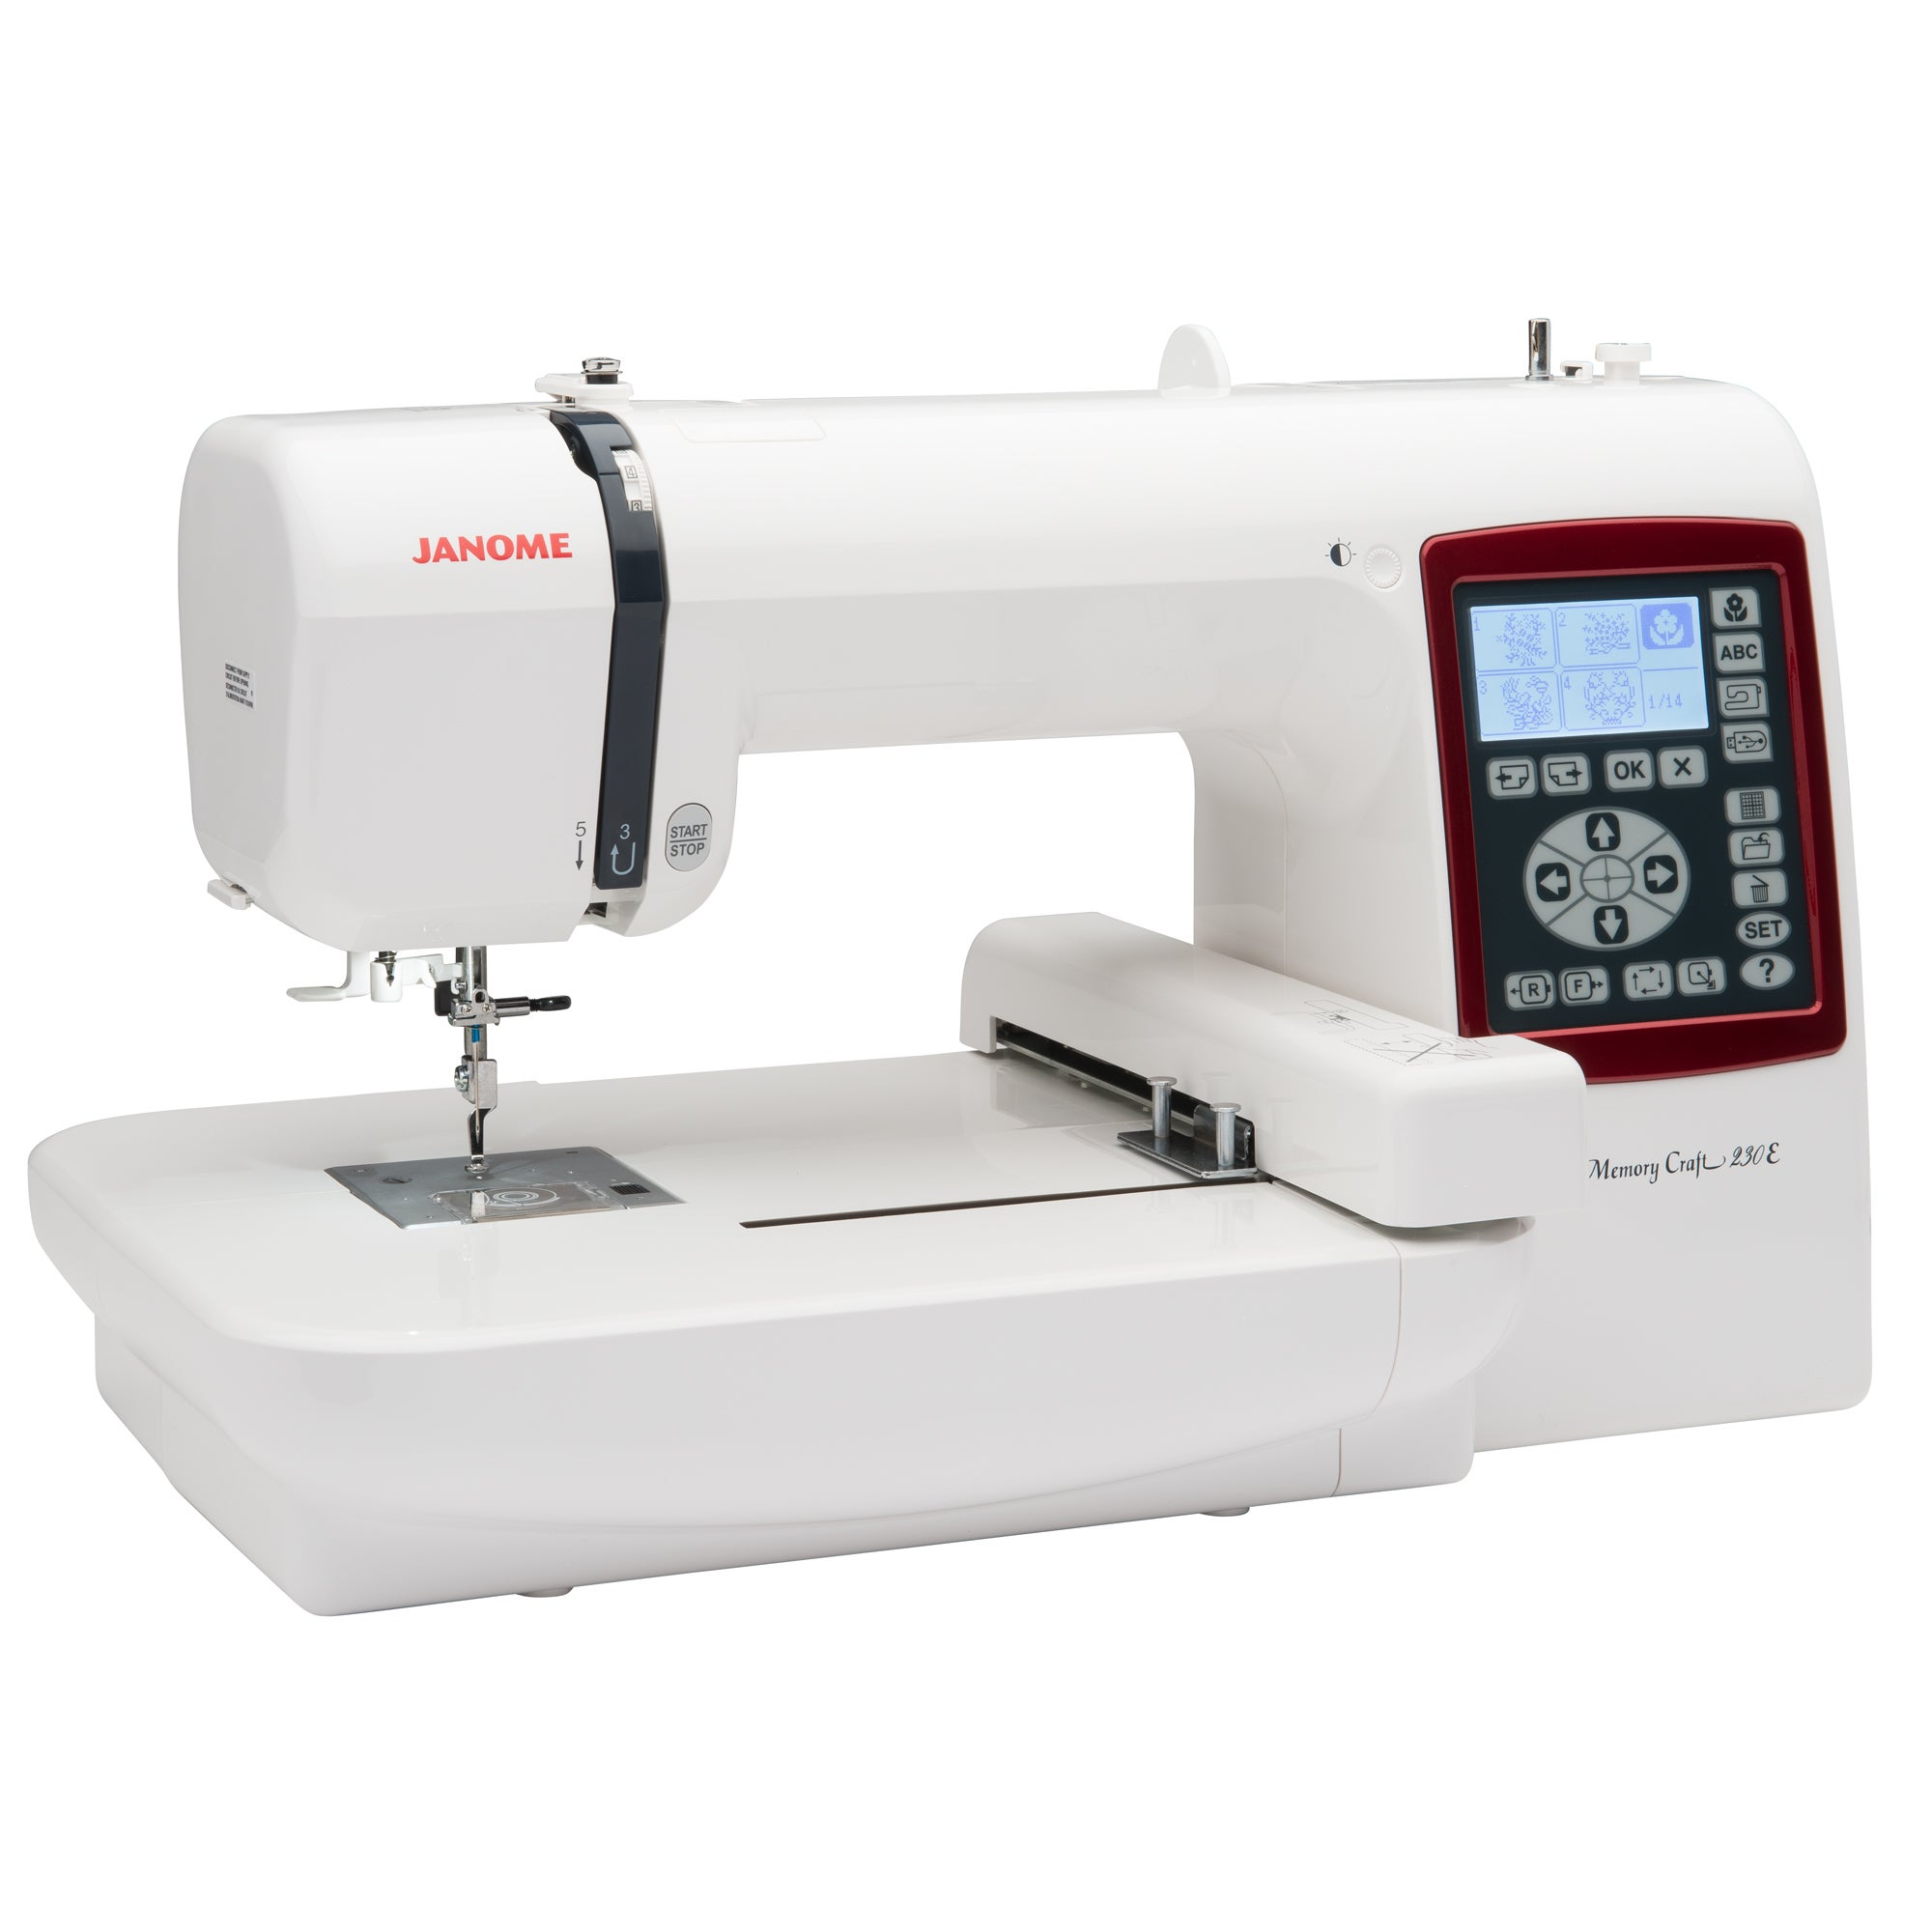 Janome 230e Embroidery Only Sewing Machine (White) (Alumi...